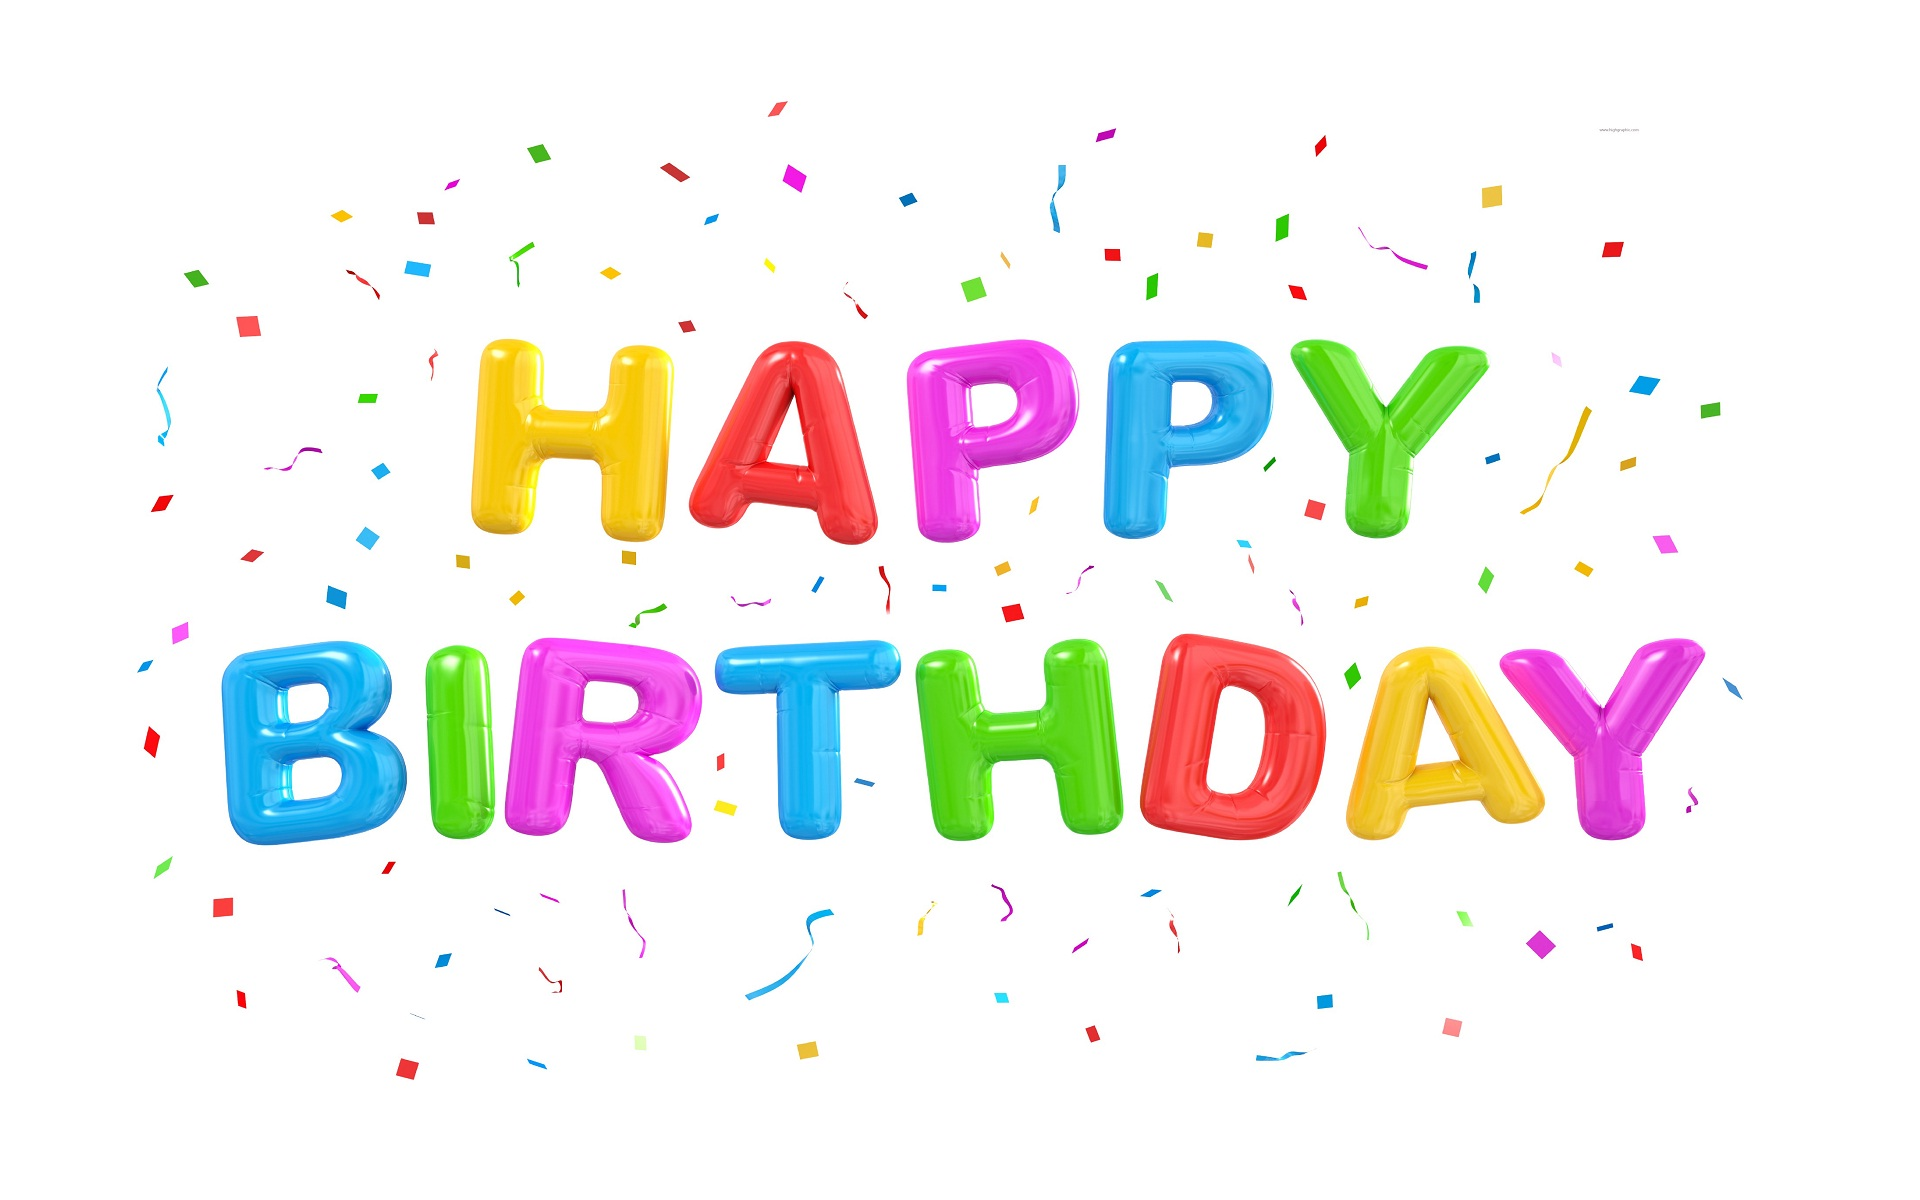 10 Best Happy Birthday Wishes With Images Quotes Square Wishing You A Happy Birthday